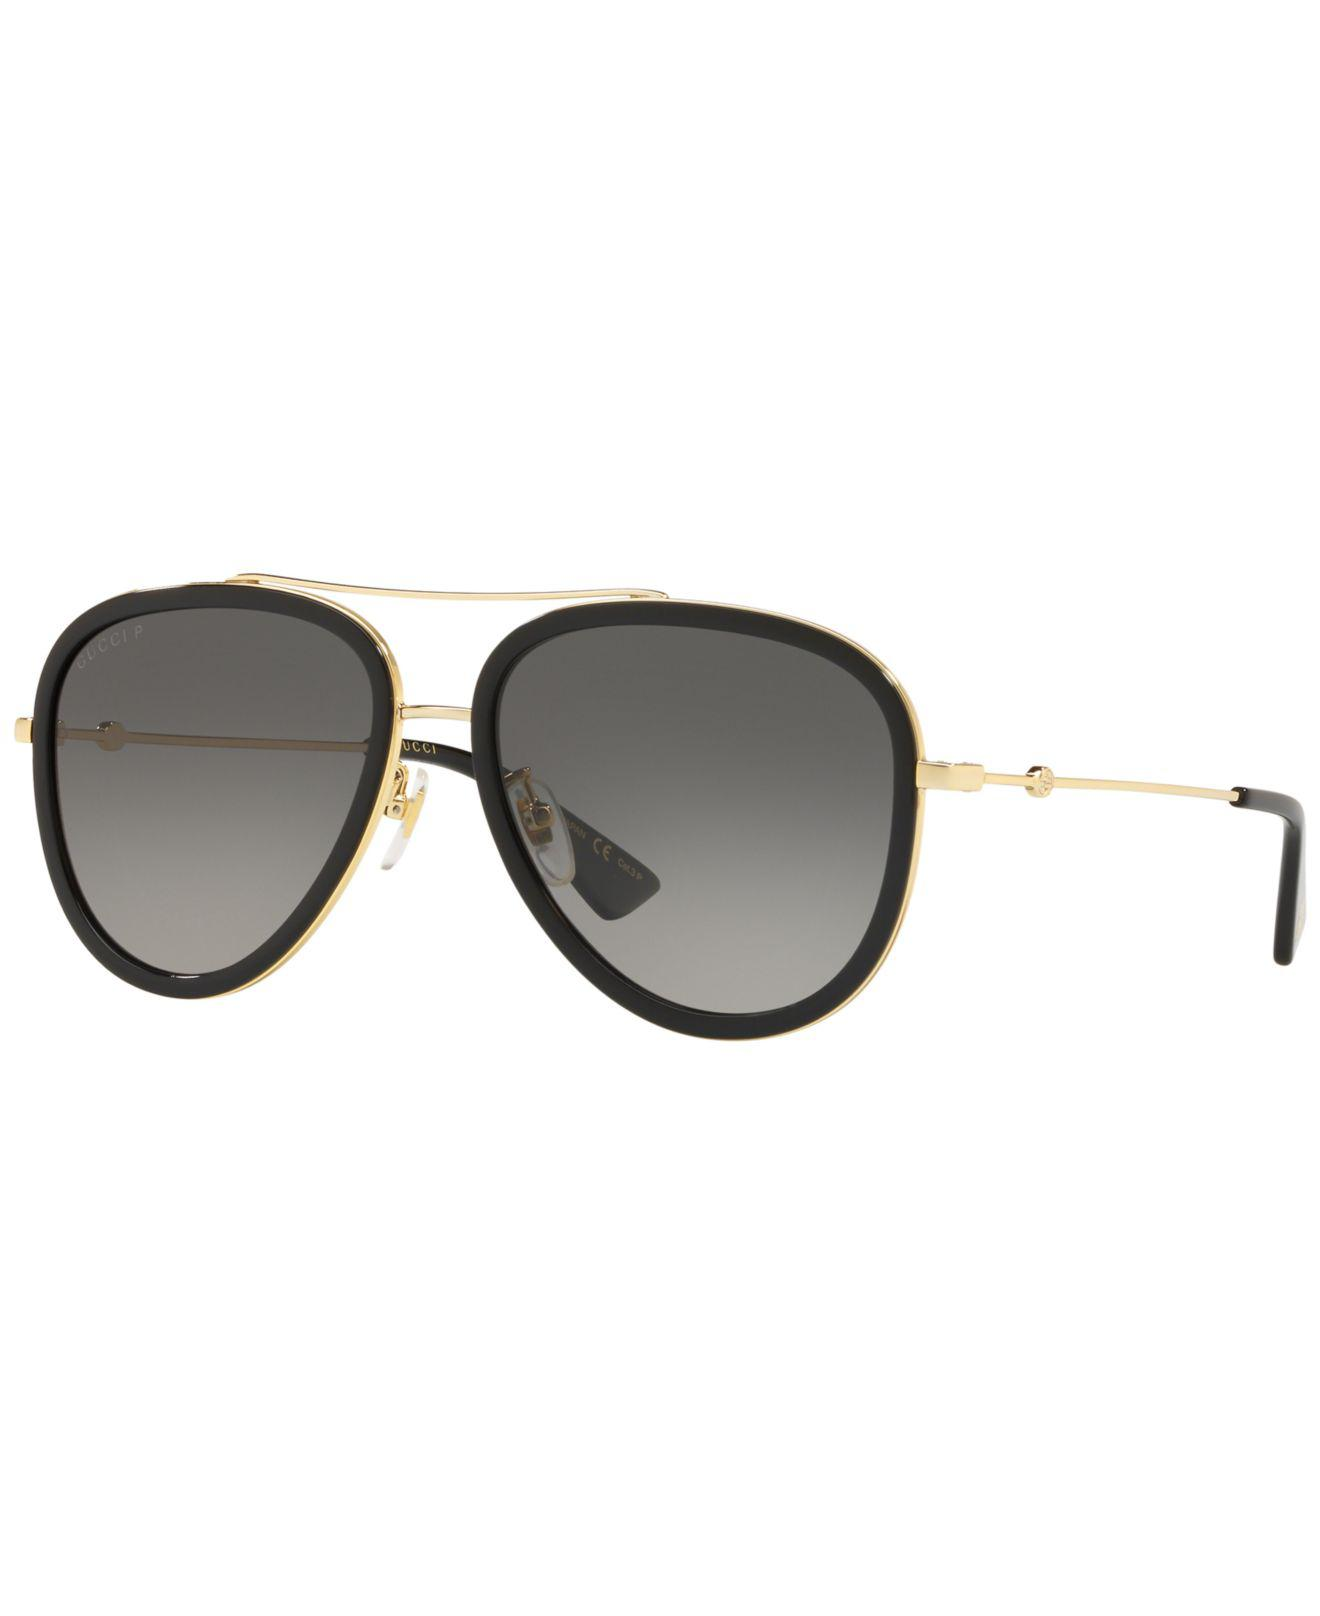 5e983bebf367c Gucci. Women s Metal   Acetate Gradient Aviator Sunglasses Gold black